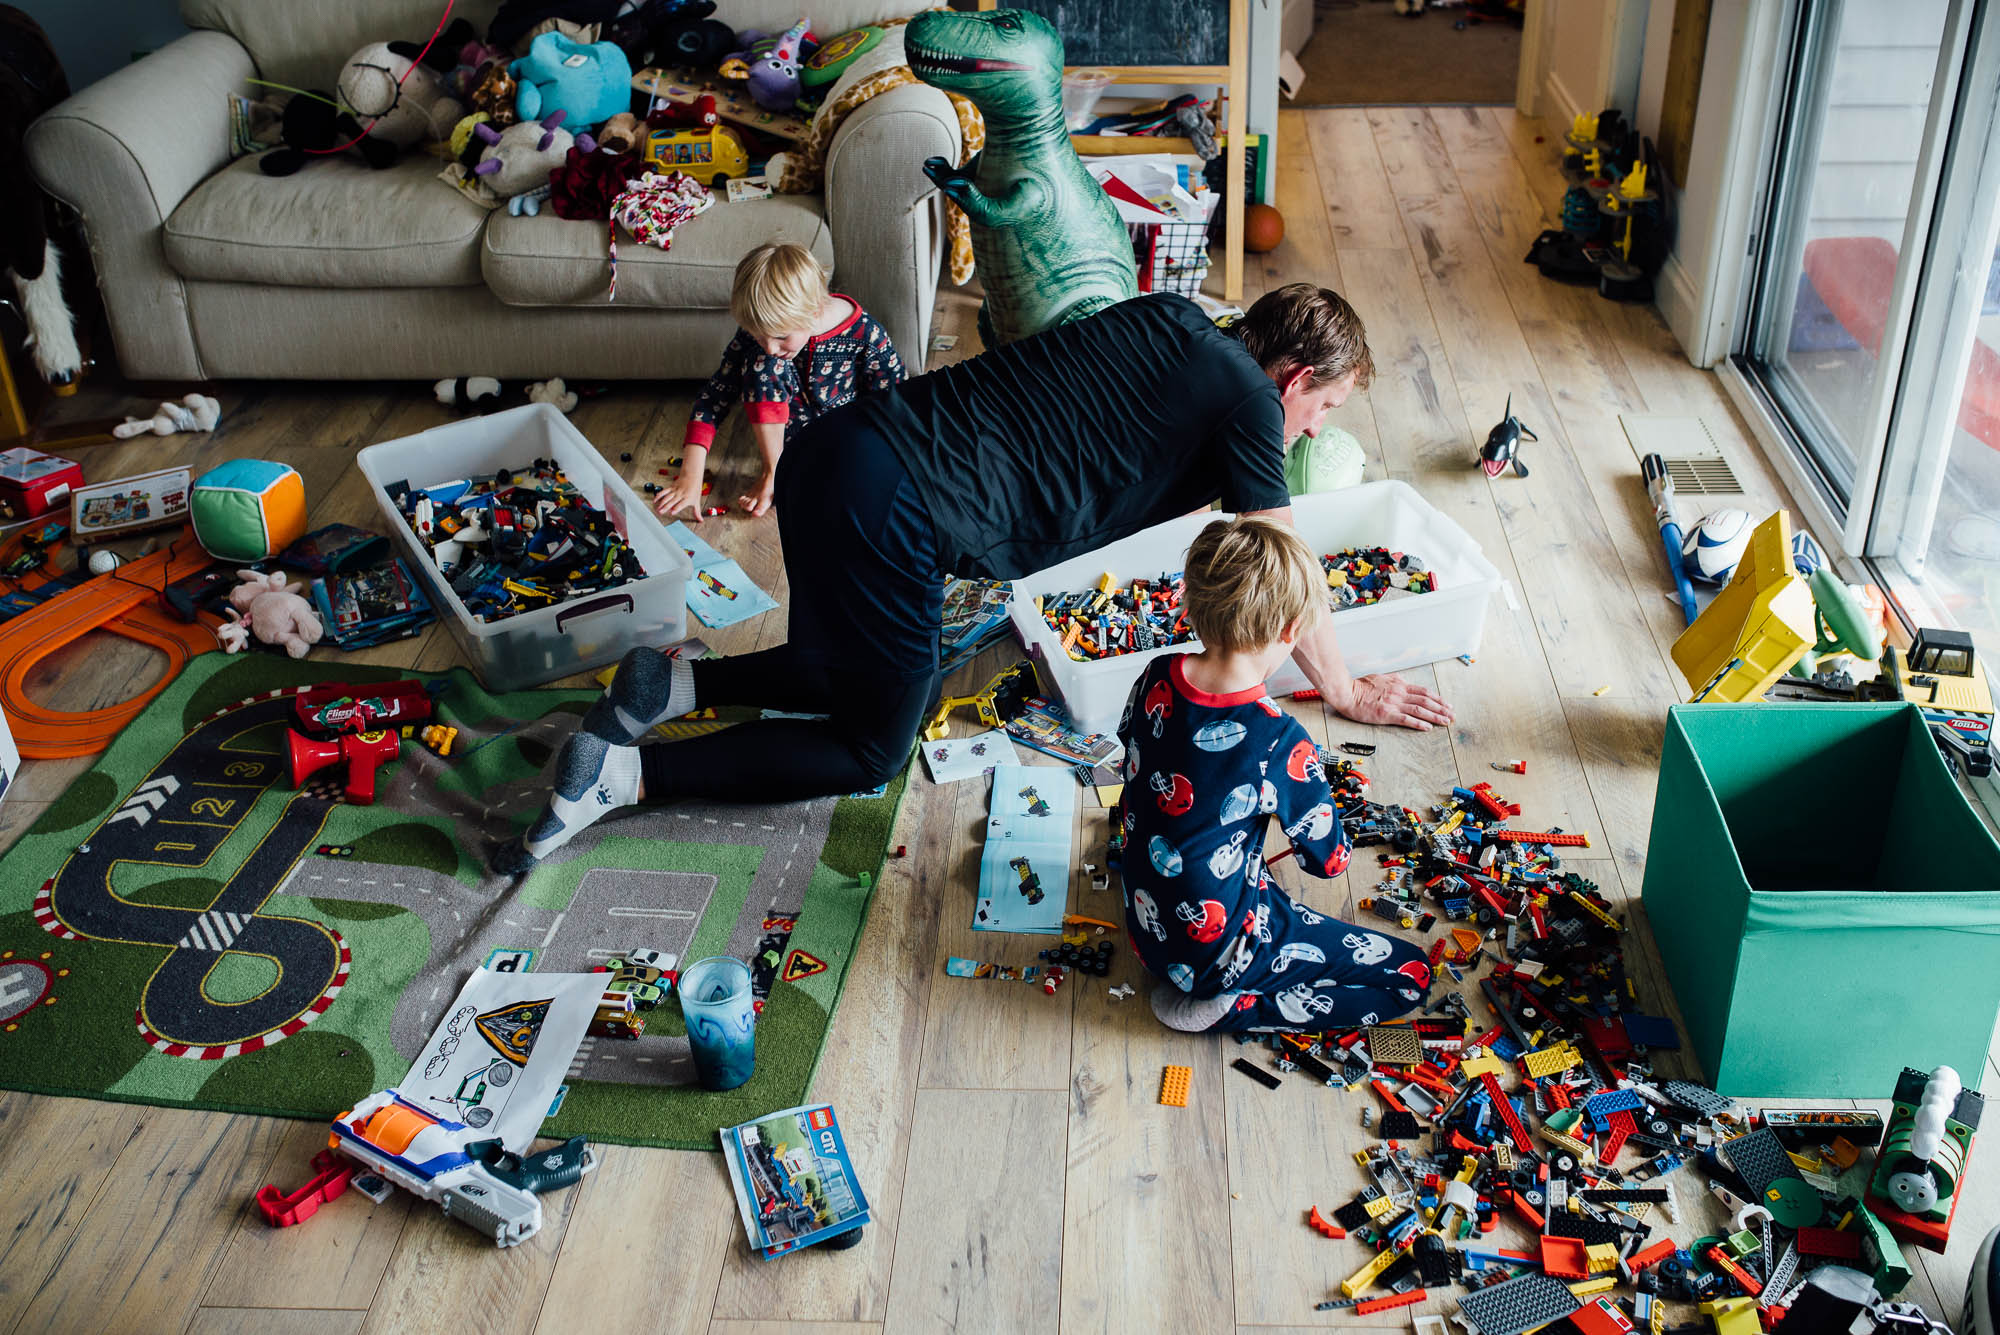 messy-playroom-full-of-toys-with-dad-and-two-boys-playing-lego